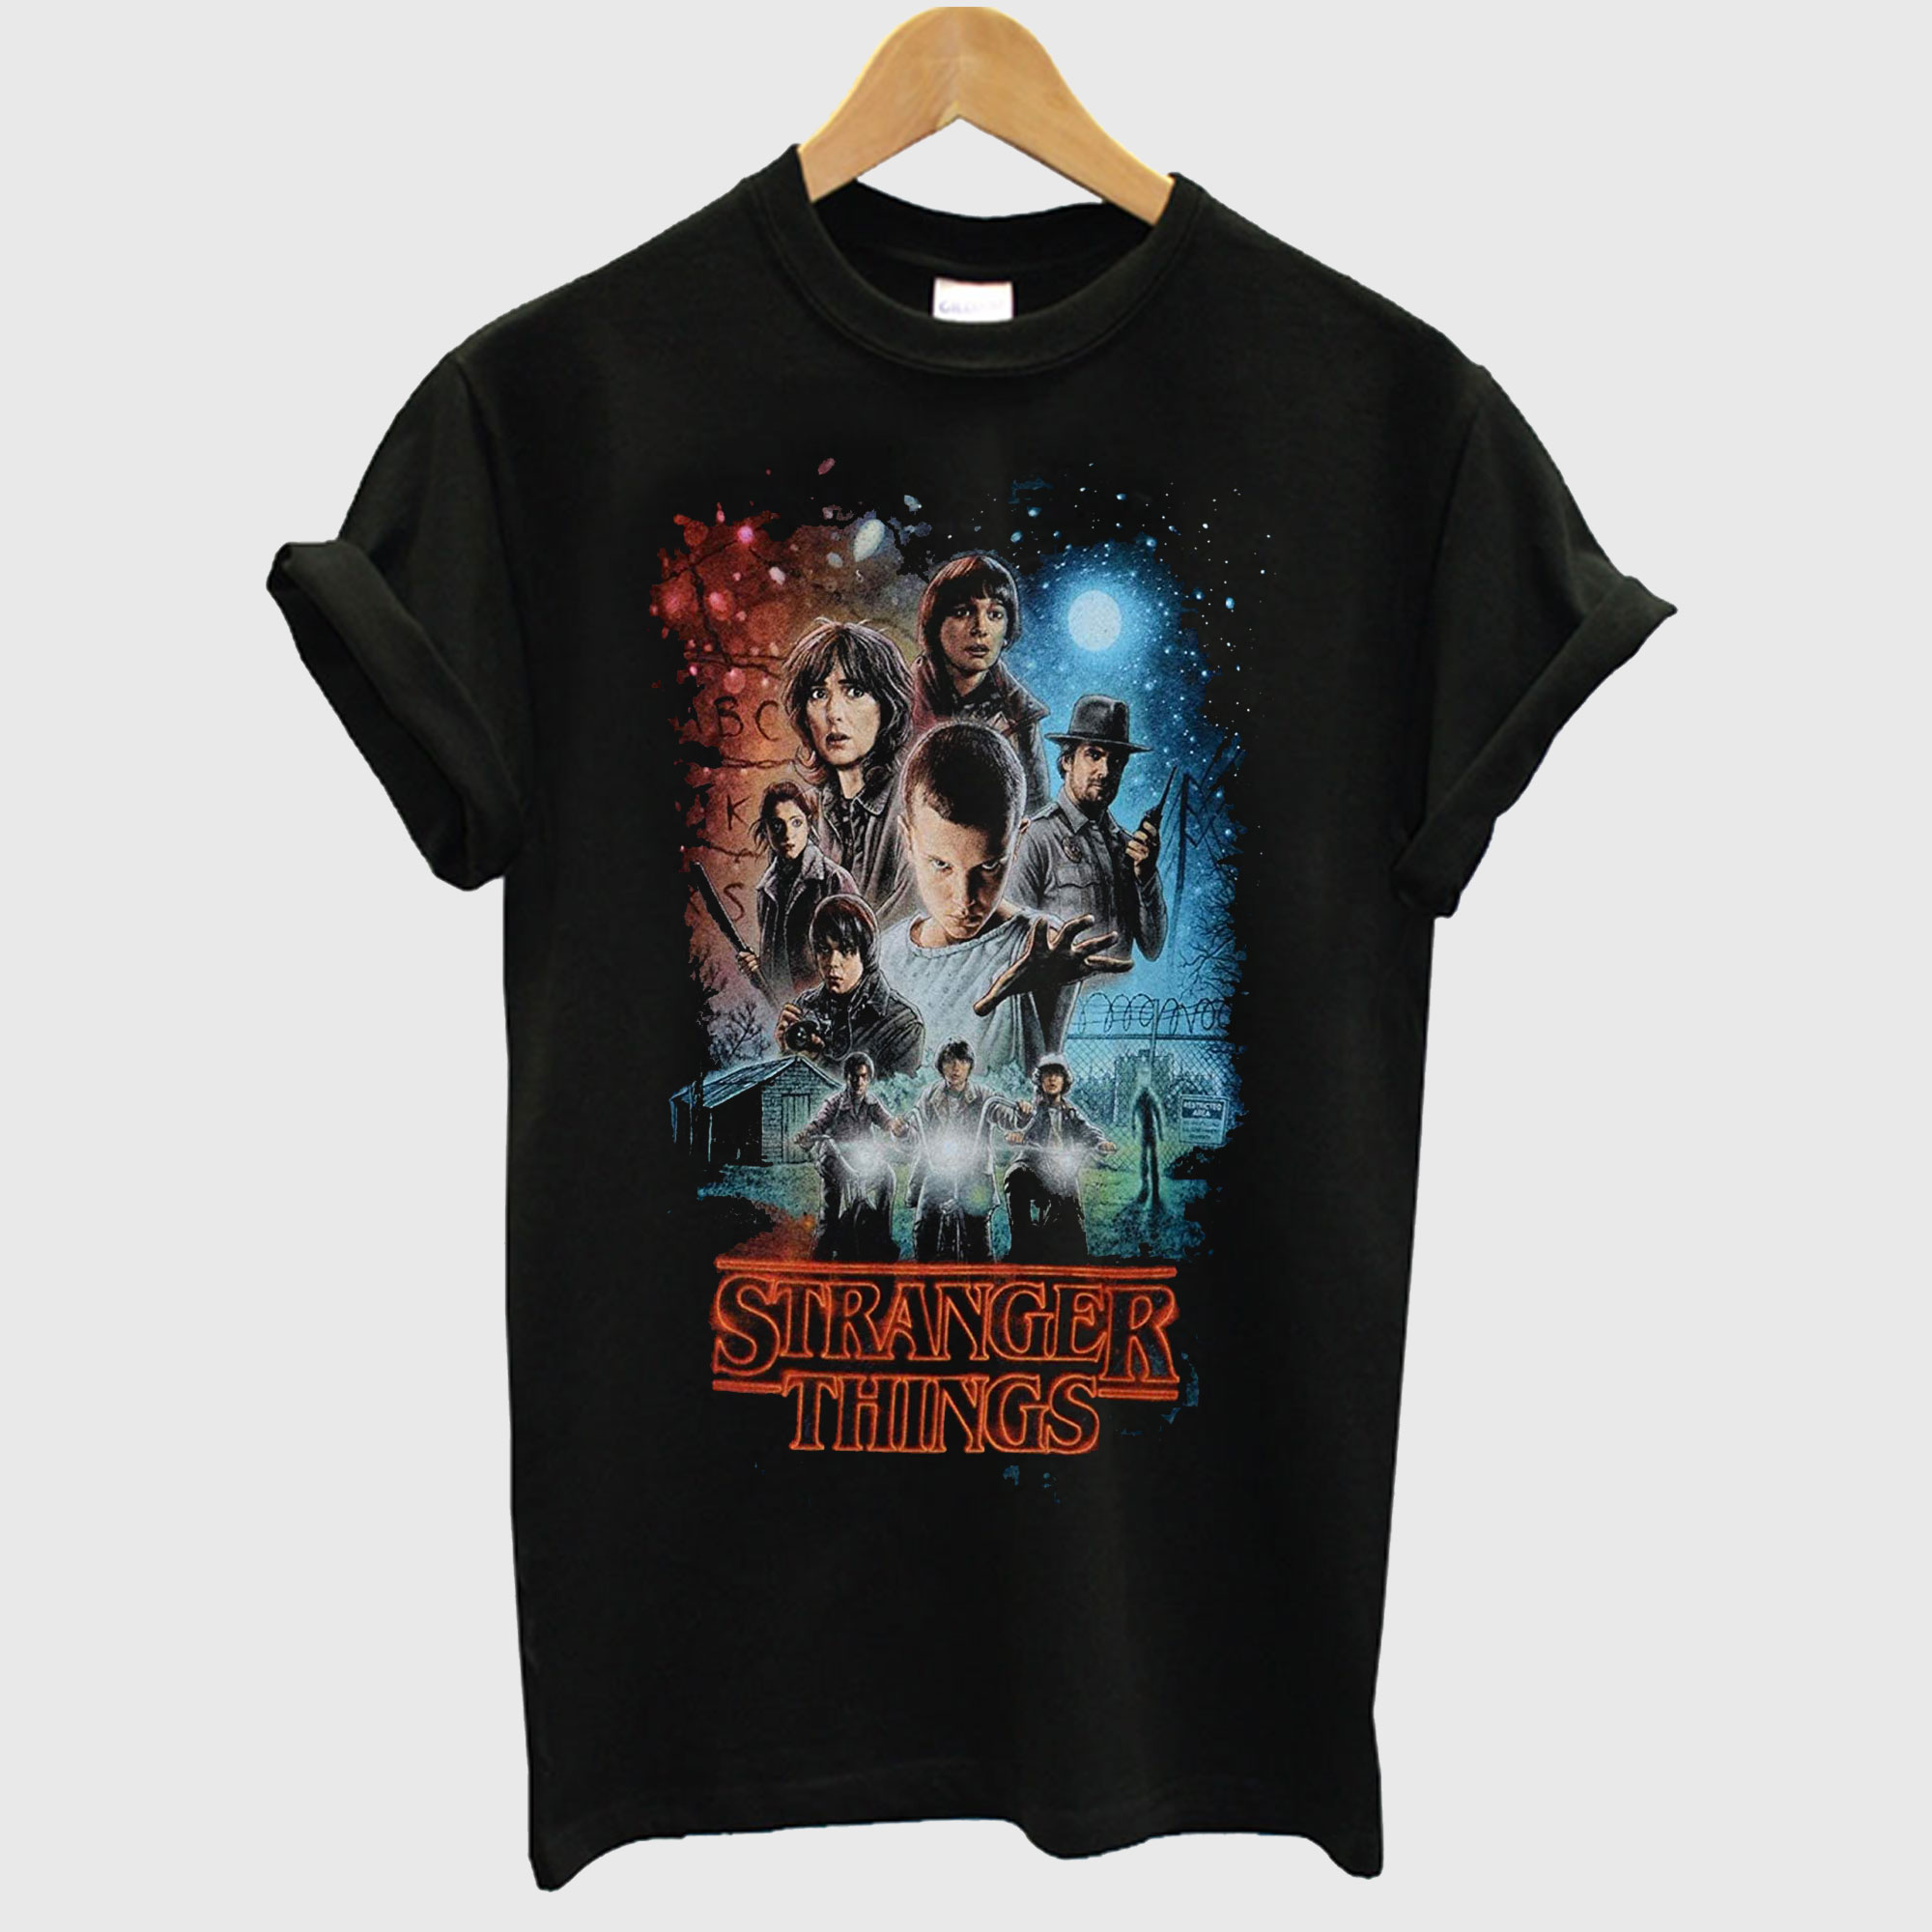 Millie Bobby Brown Stranger Things Autographed Group Shot Graphic T-Shirt